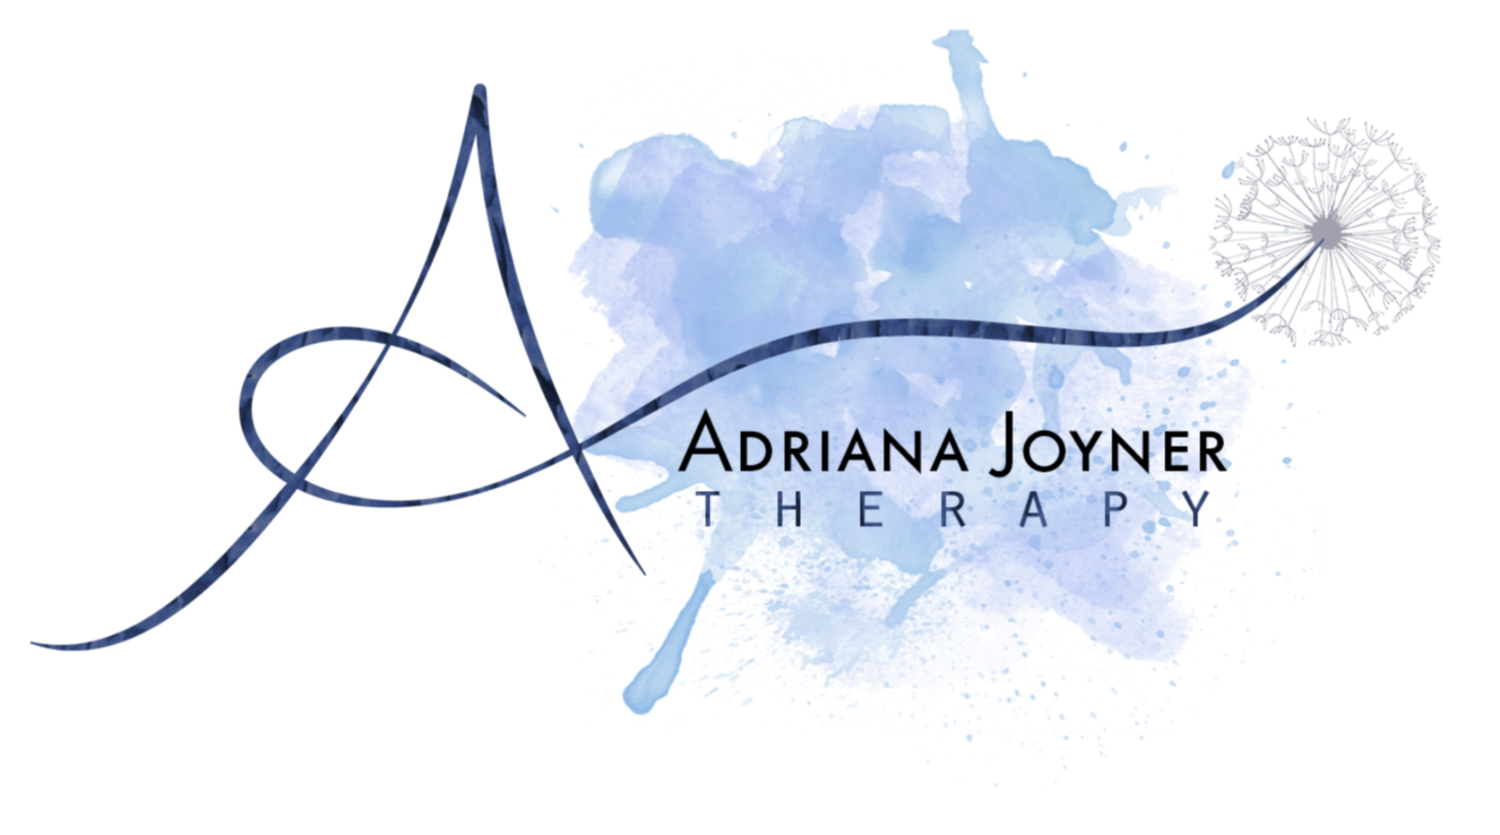 Adriana Joyner Therapy - Personal growth counseling in Gold River and the greater Sacramento Area